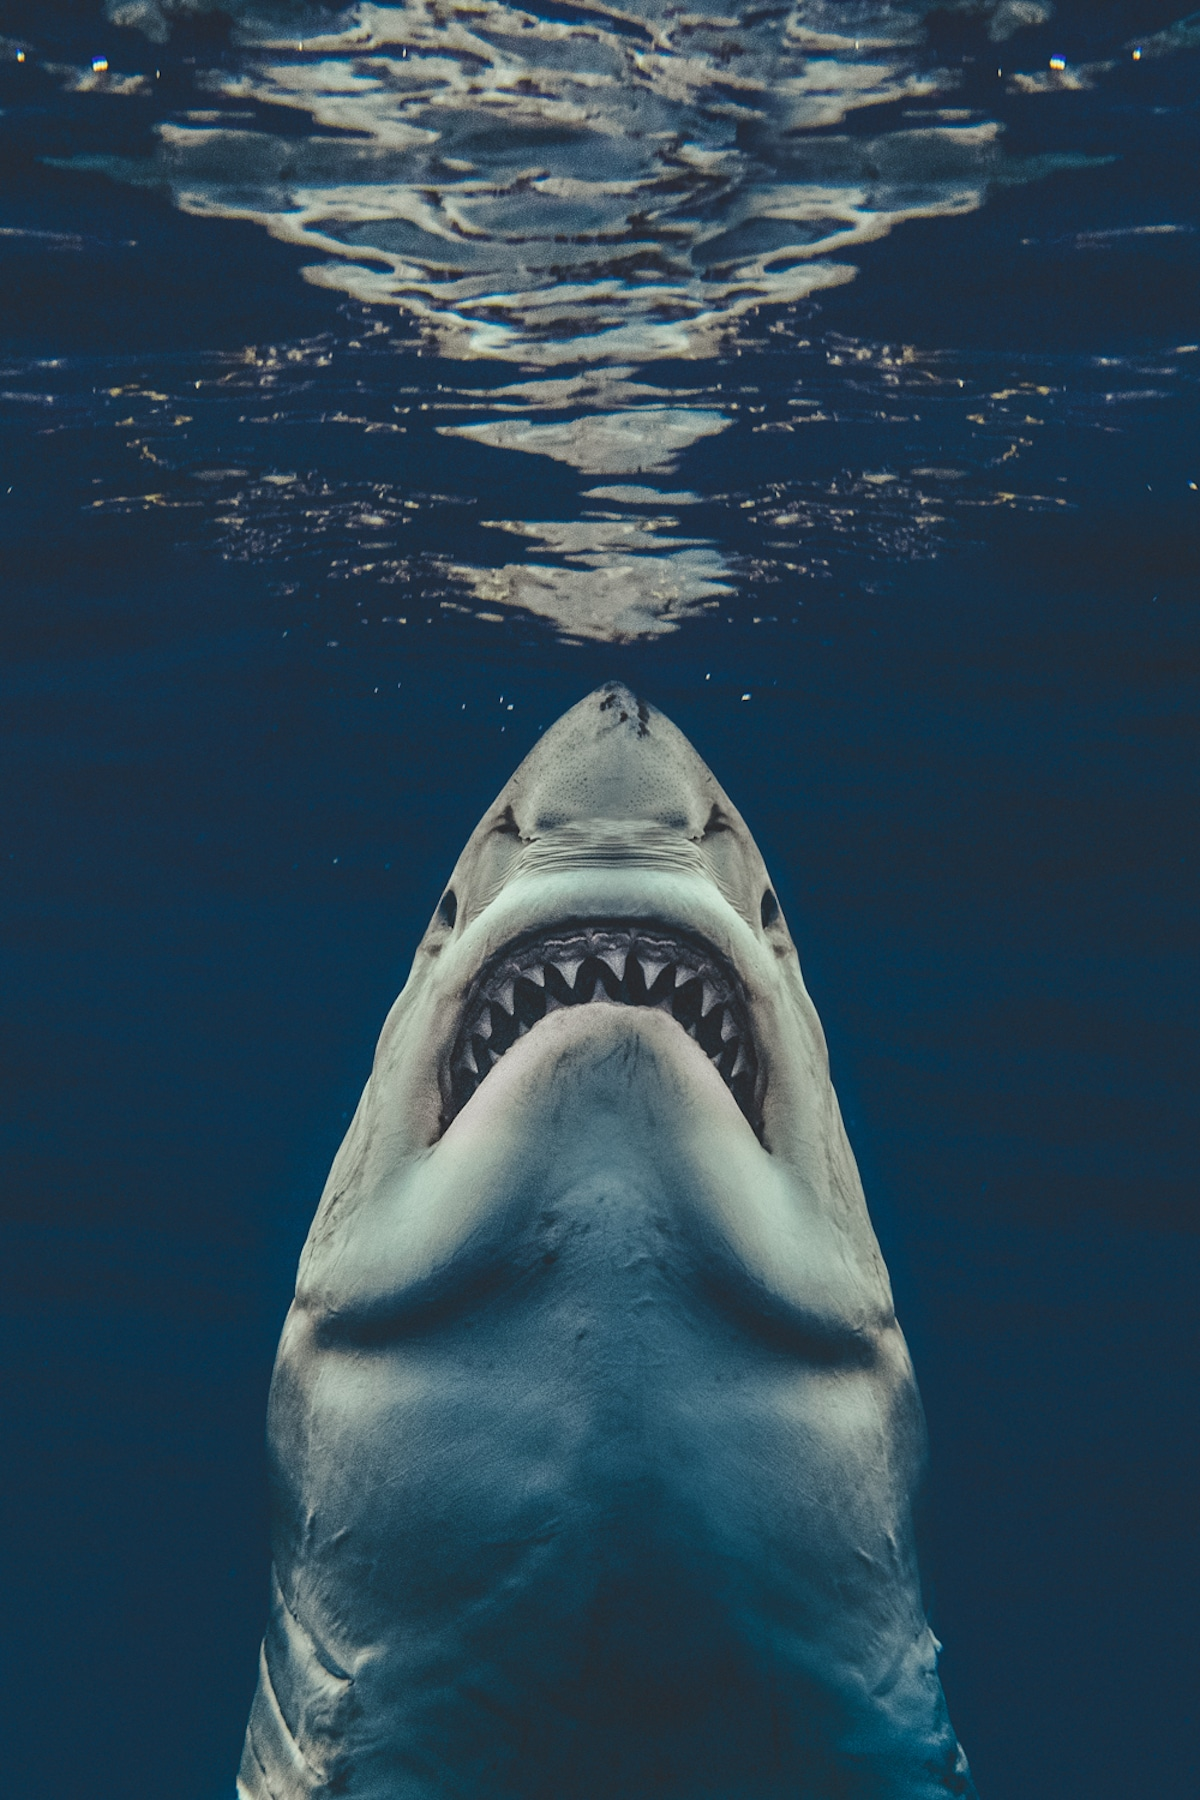 Jaws Movie Poster Recreated by Euan Rannachan